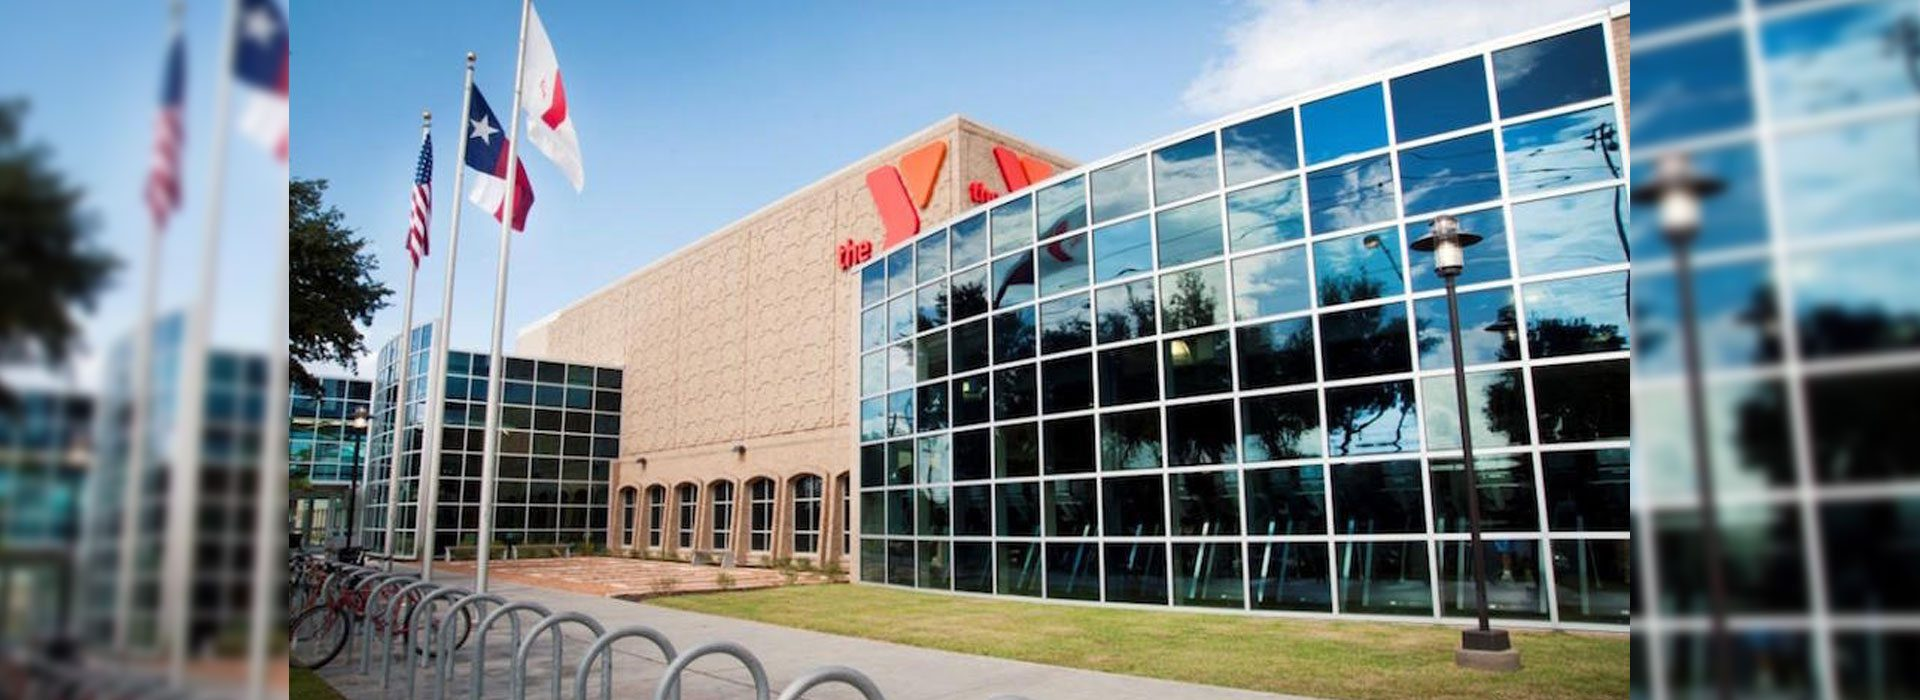 Curtain Walls & Multi-Story Buildings | Commercial Glass Products | Anchor-Ventana Glass